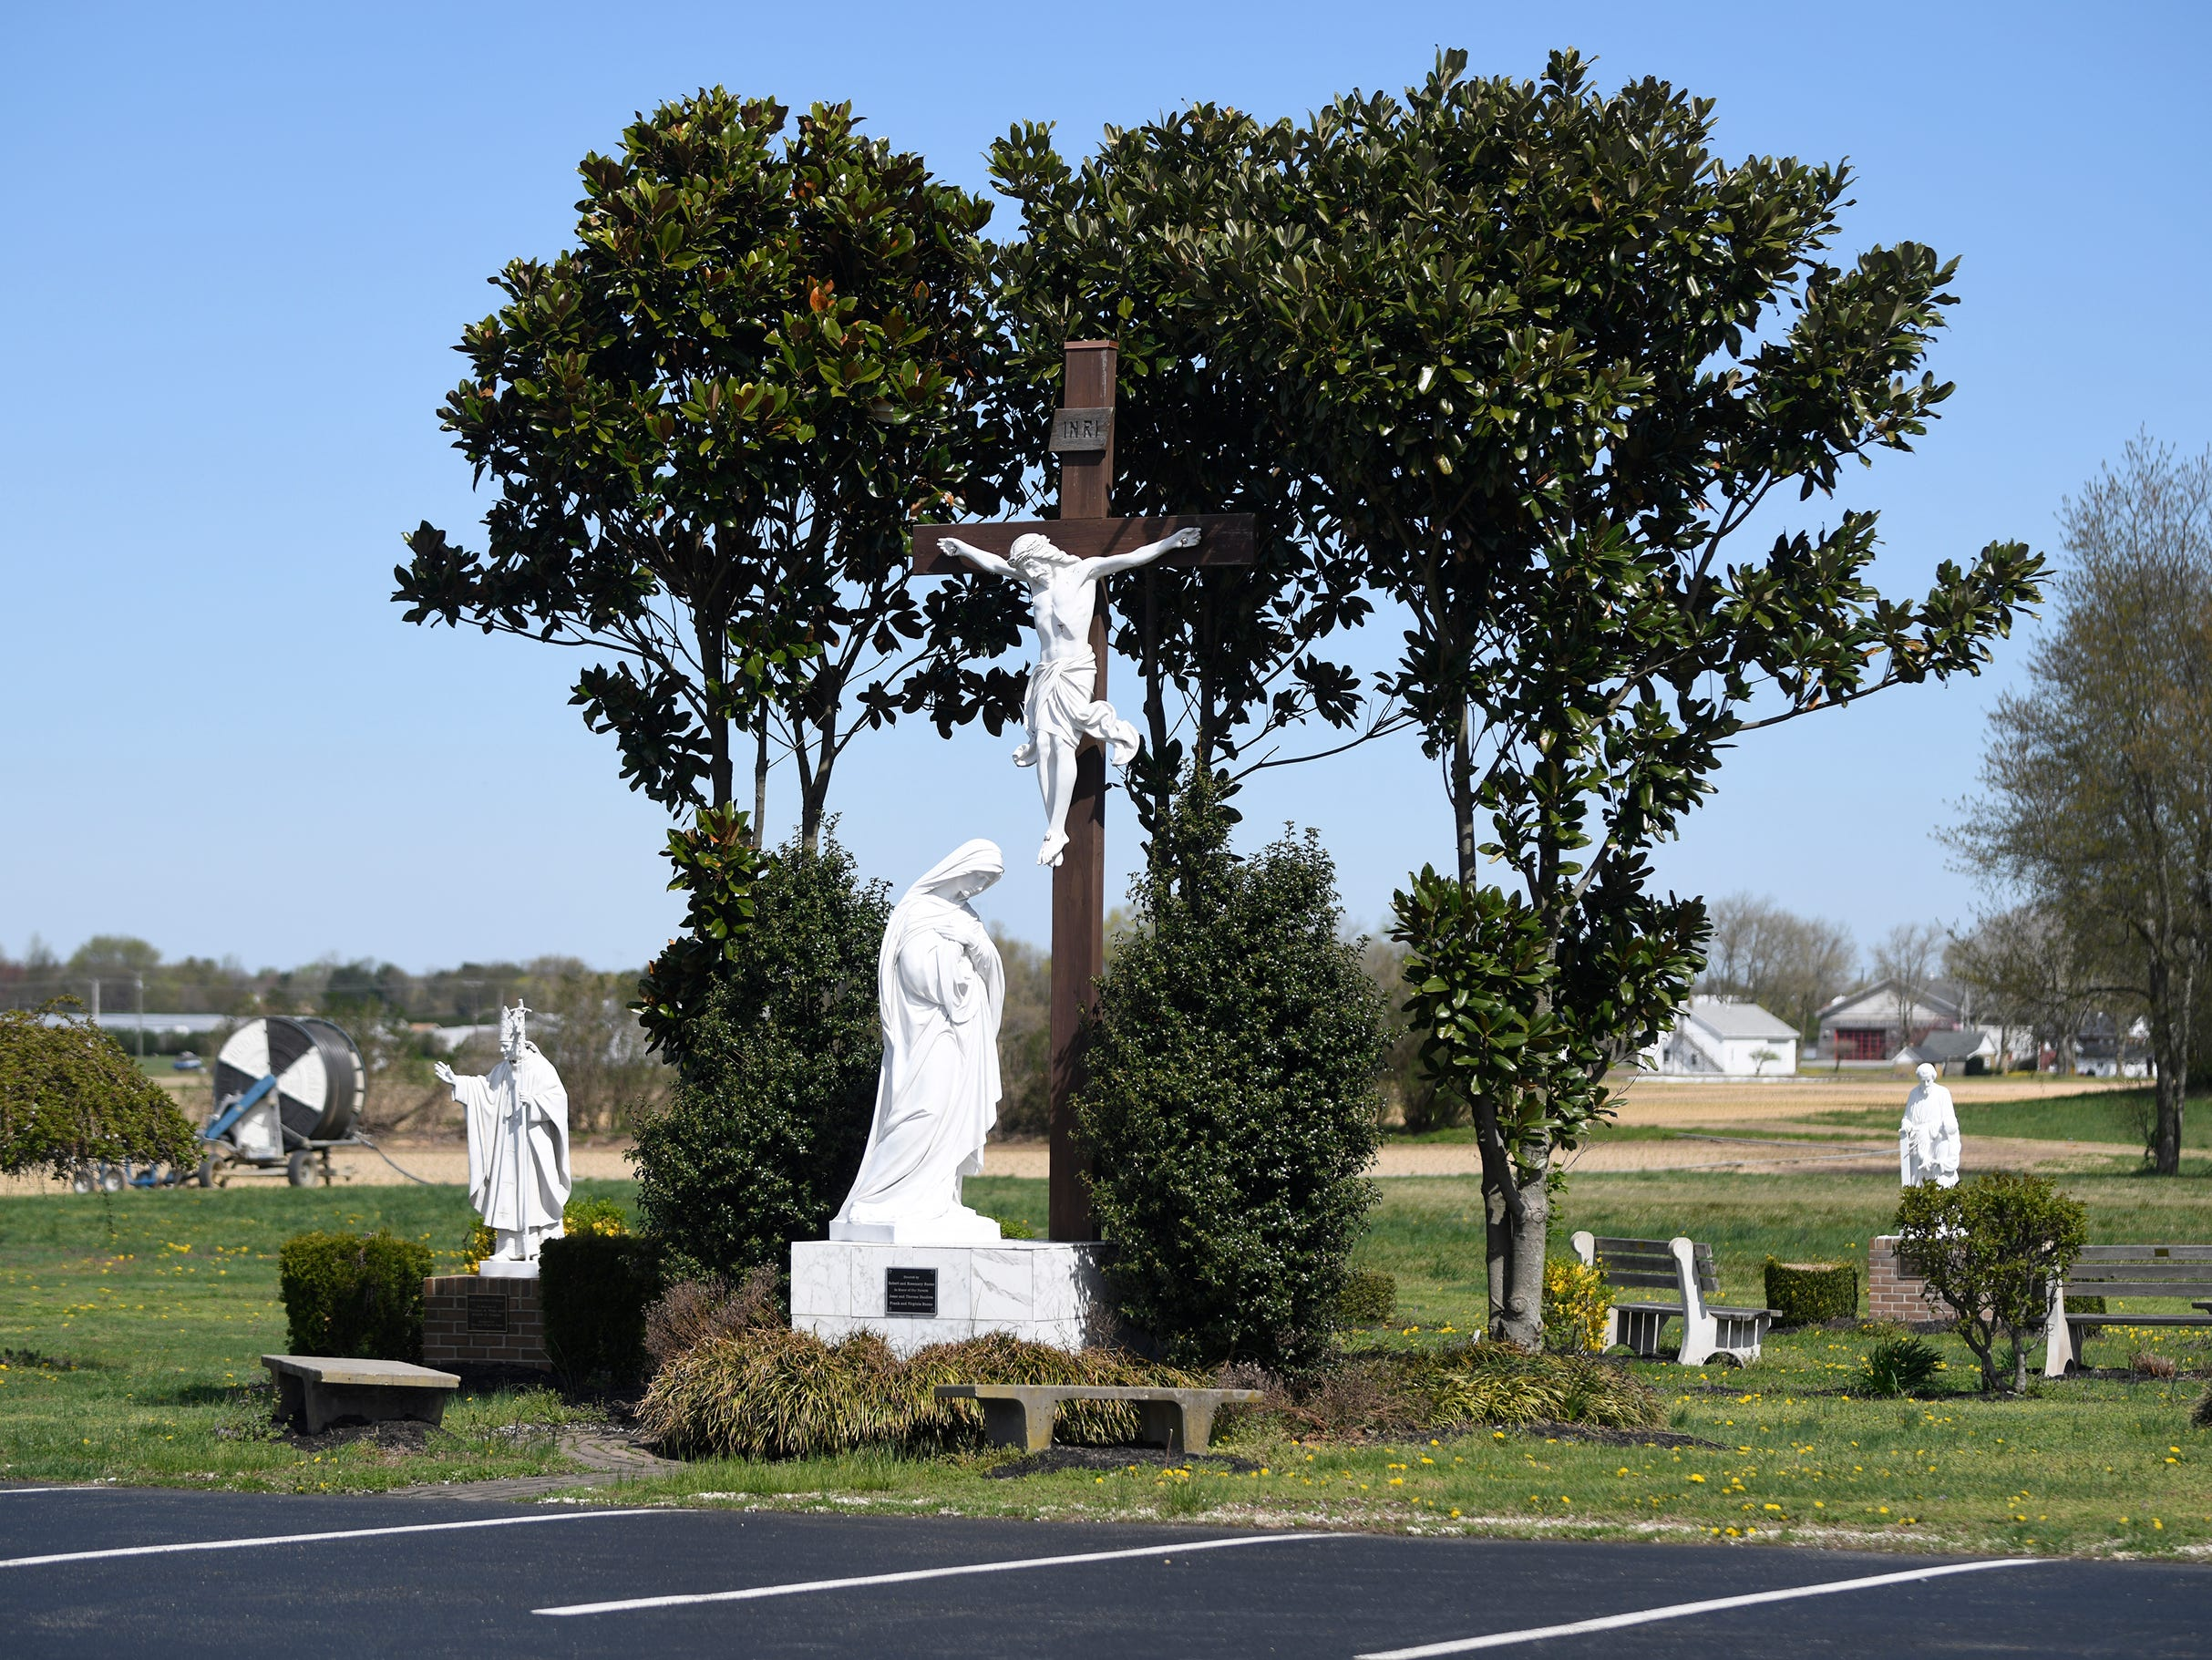 Our Lady of Pompeii Roman Catholic Church in Vineland features many religious structures throughout the property.